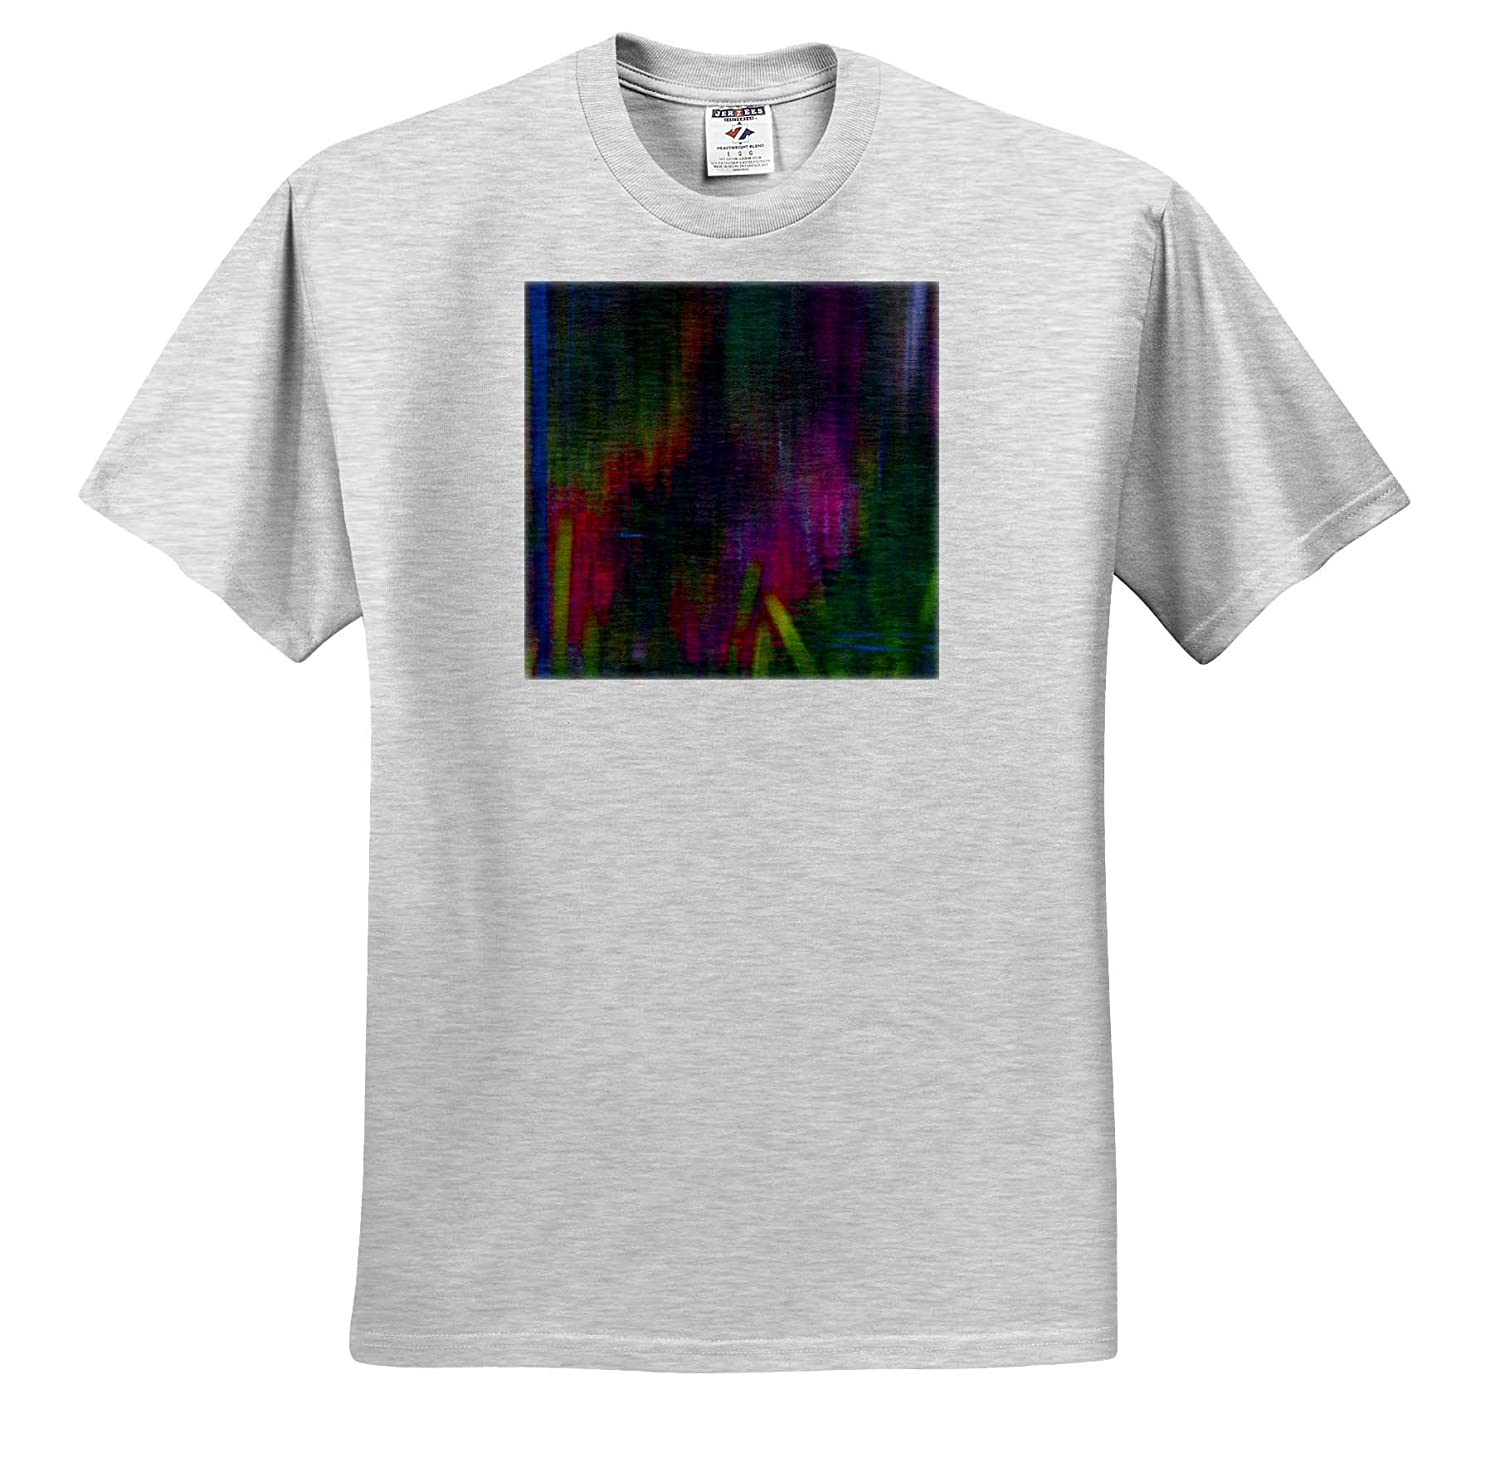 ts/_310385 Abstracts - Adult T-Shirt XL Abstract Pattern Reflections of Leaves on The Pond 3dRose Danita Delimont